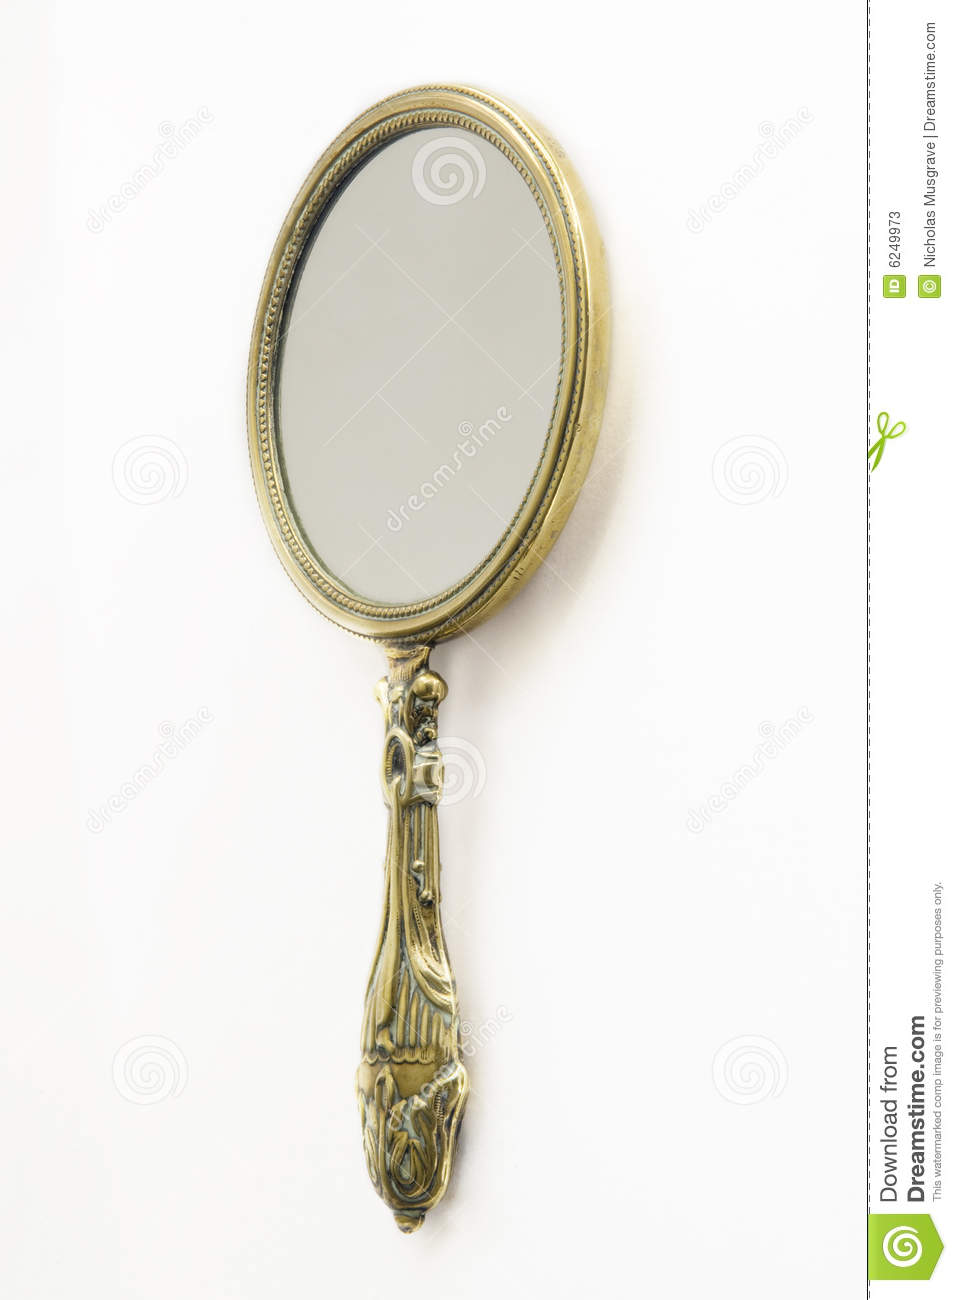 Antique Brass Hand Mirror Stock Image Image Of Glass